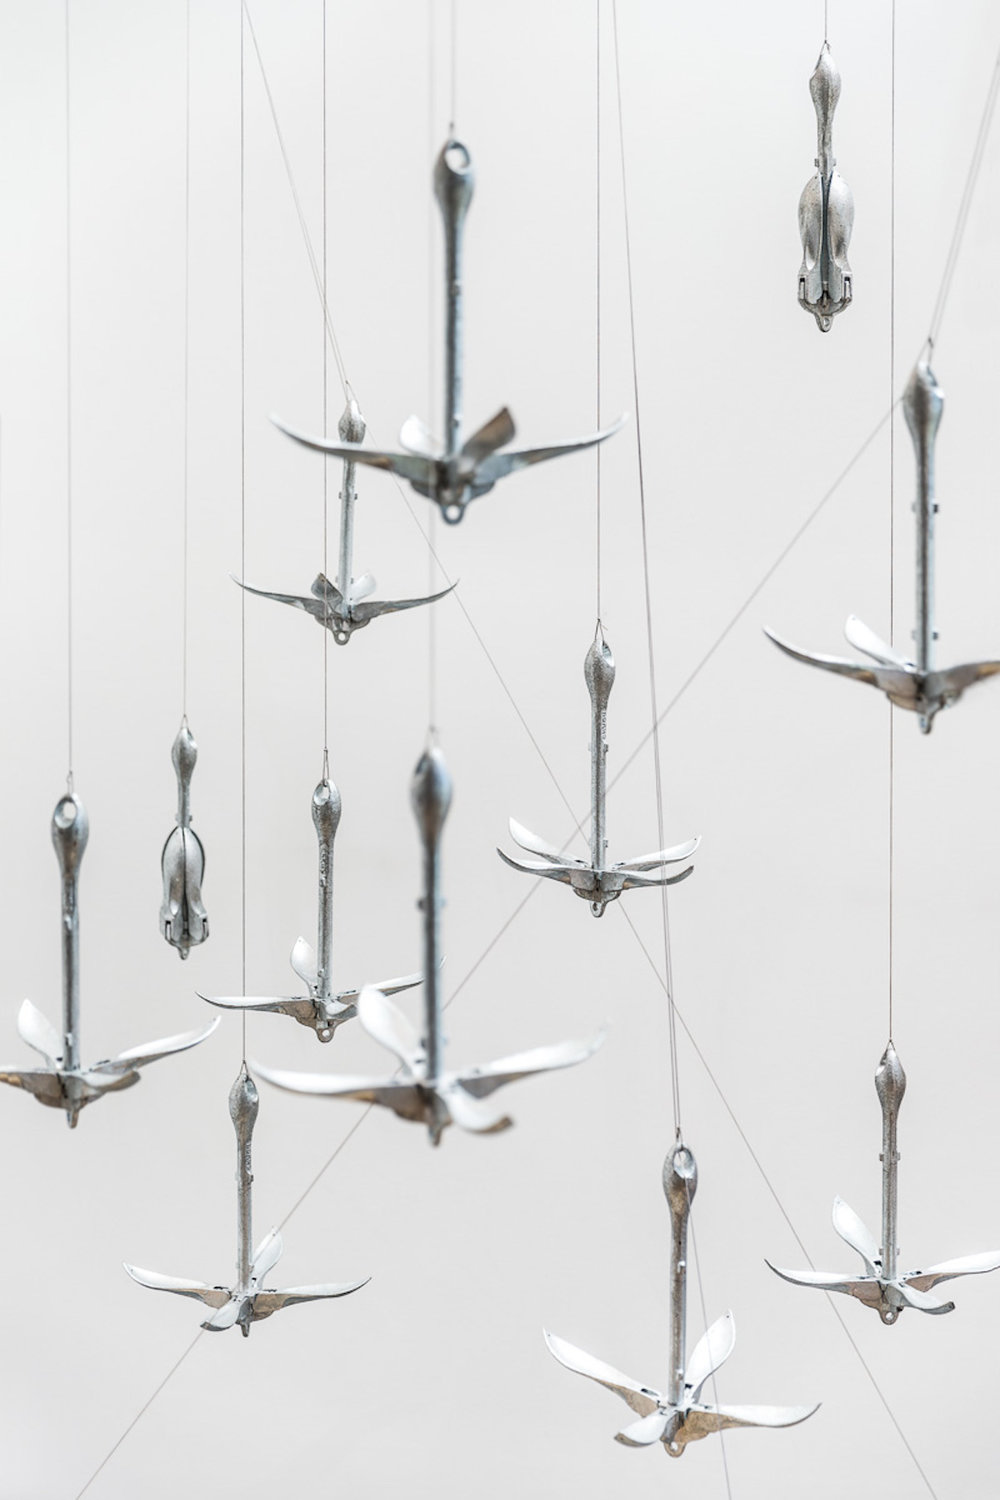 Edwina Cooper,  The Weather Work  (studio detail), 2015, Anchors, dynex, shockcord, pulleys, motors, plywood, pine, saddles, thimbles, eyelets, whipping twine, 308 x 180 x 180 cm, Photograph James Field, courtesy of Adelaide Central School of Art